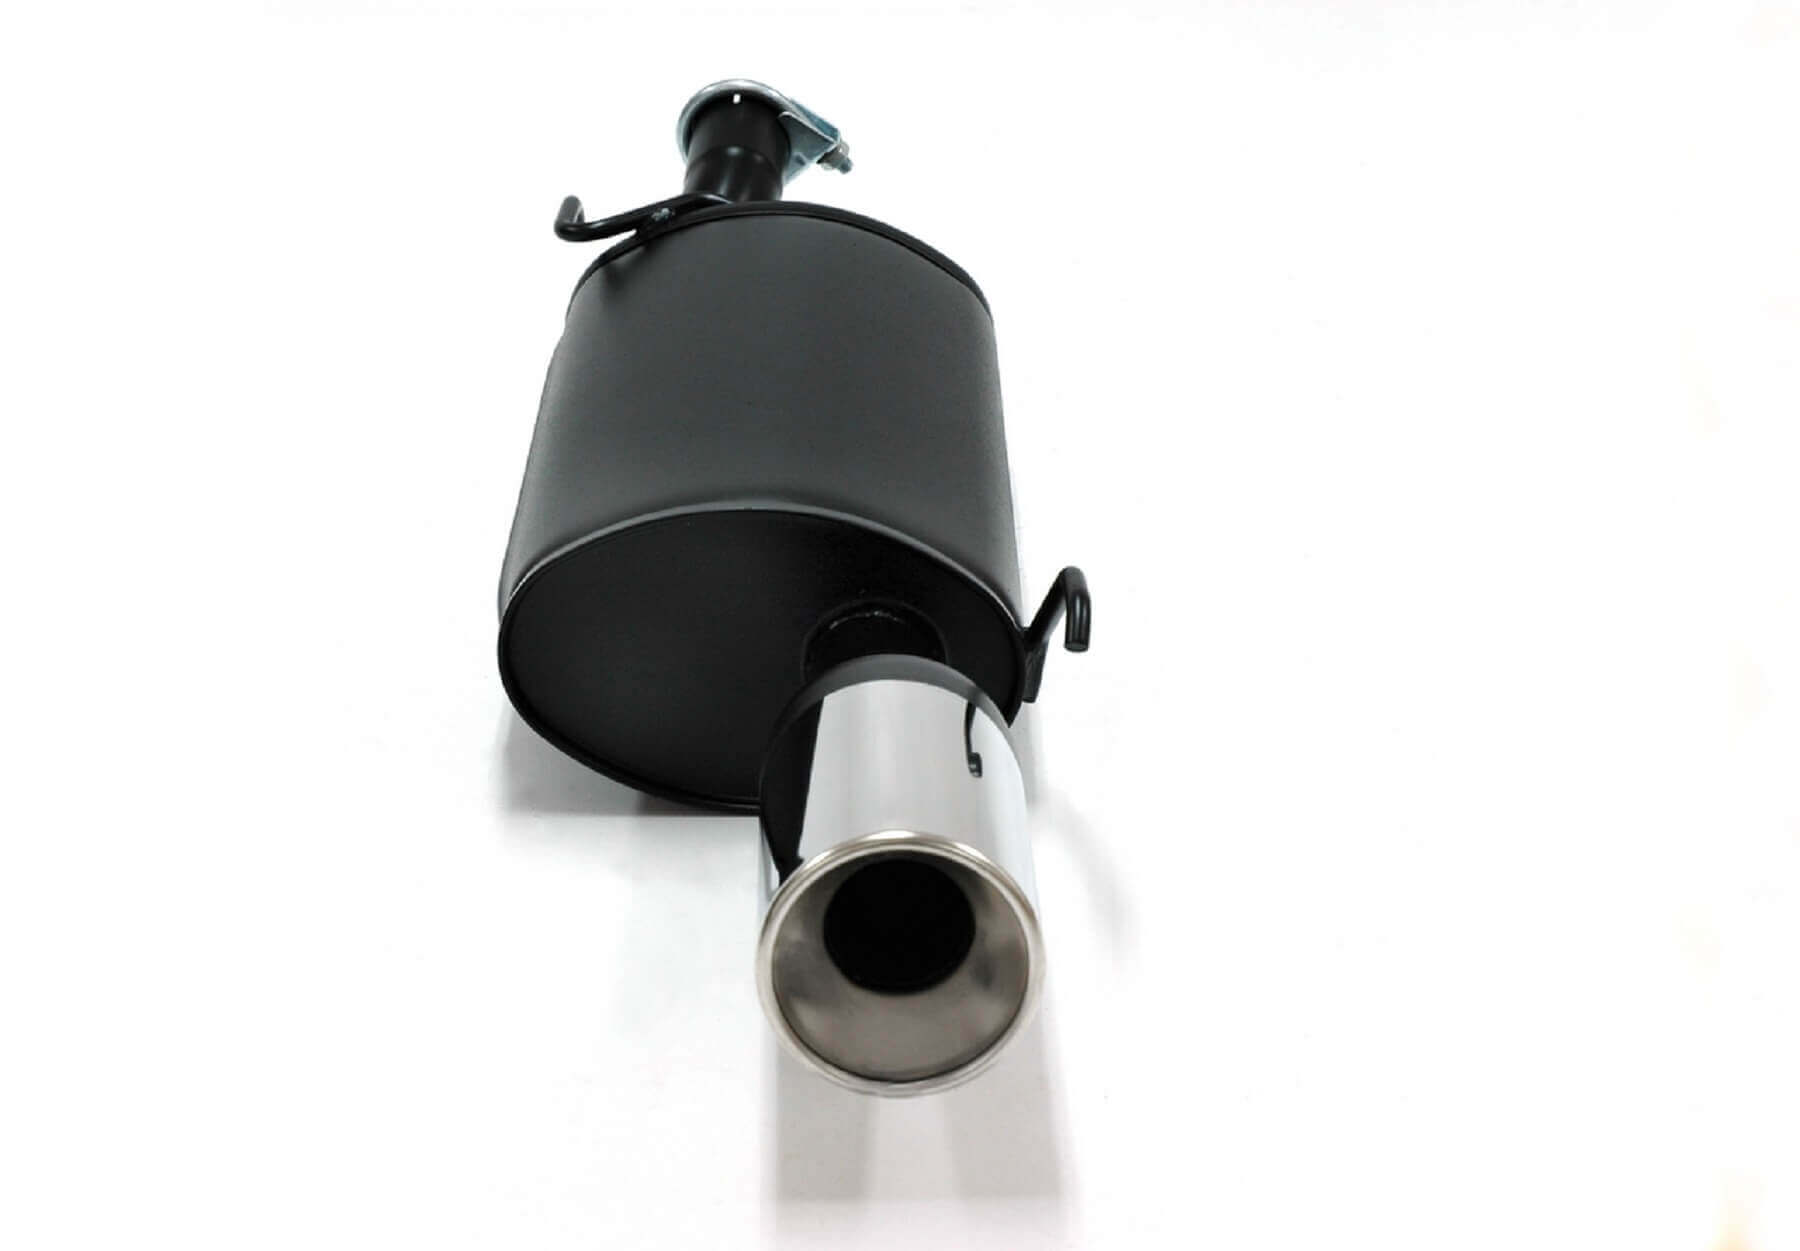 ford fiesta mk4 1 25i 1 3i jetex performance aluminised steel back box exhaust with round 100mm tail pipe